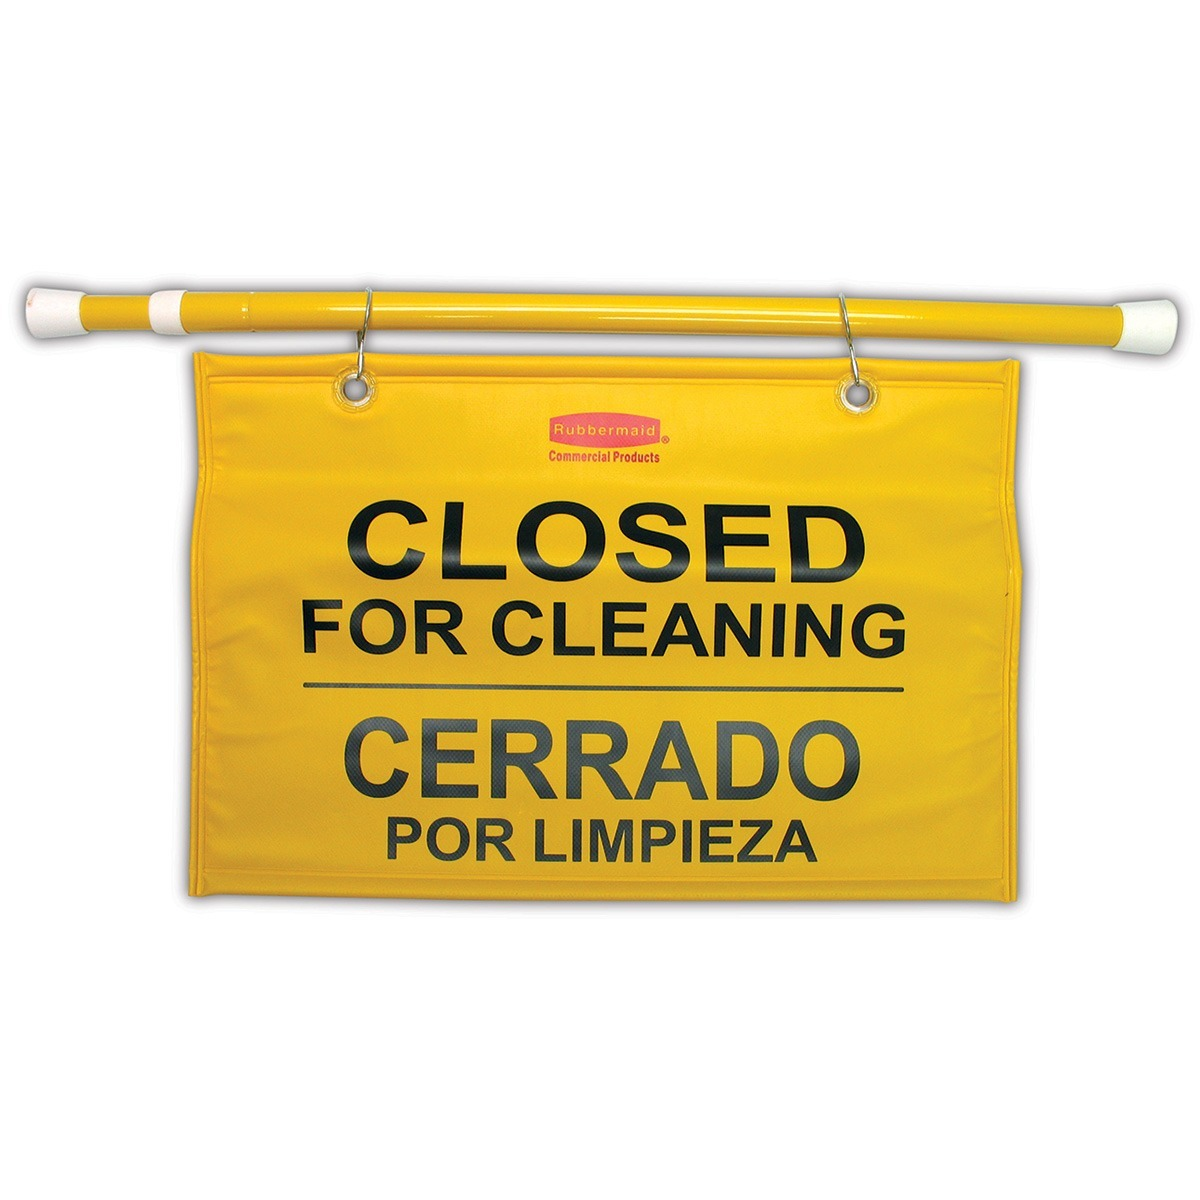 Restroom cleaning procedures rubbermaid hanging closed for cleaning safety sign magicingreecefo Images